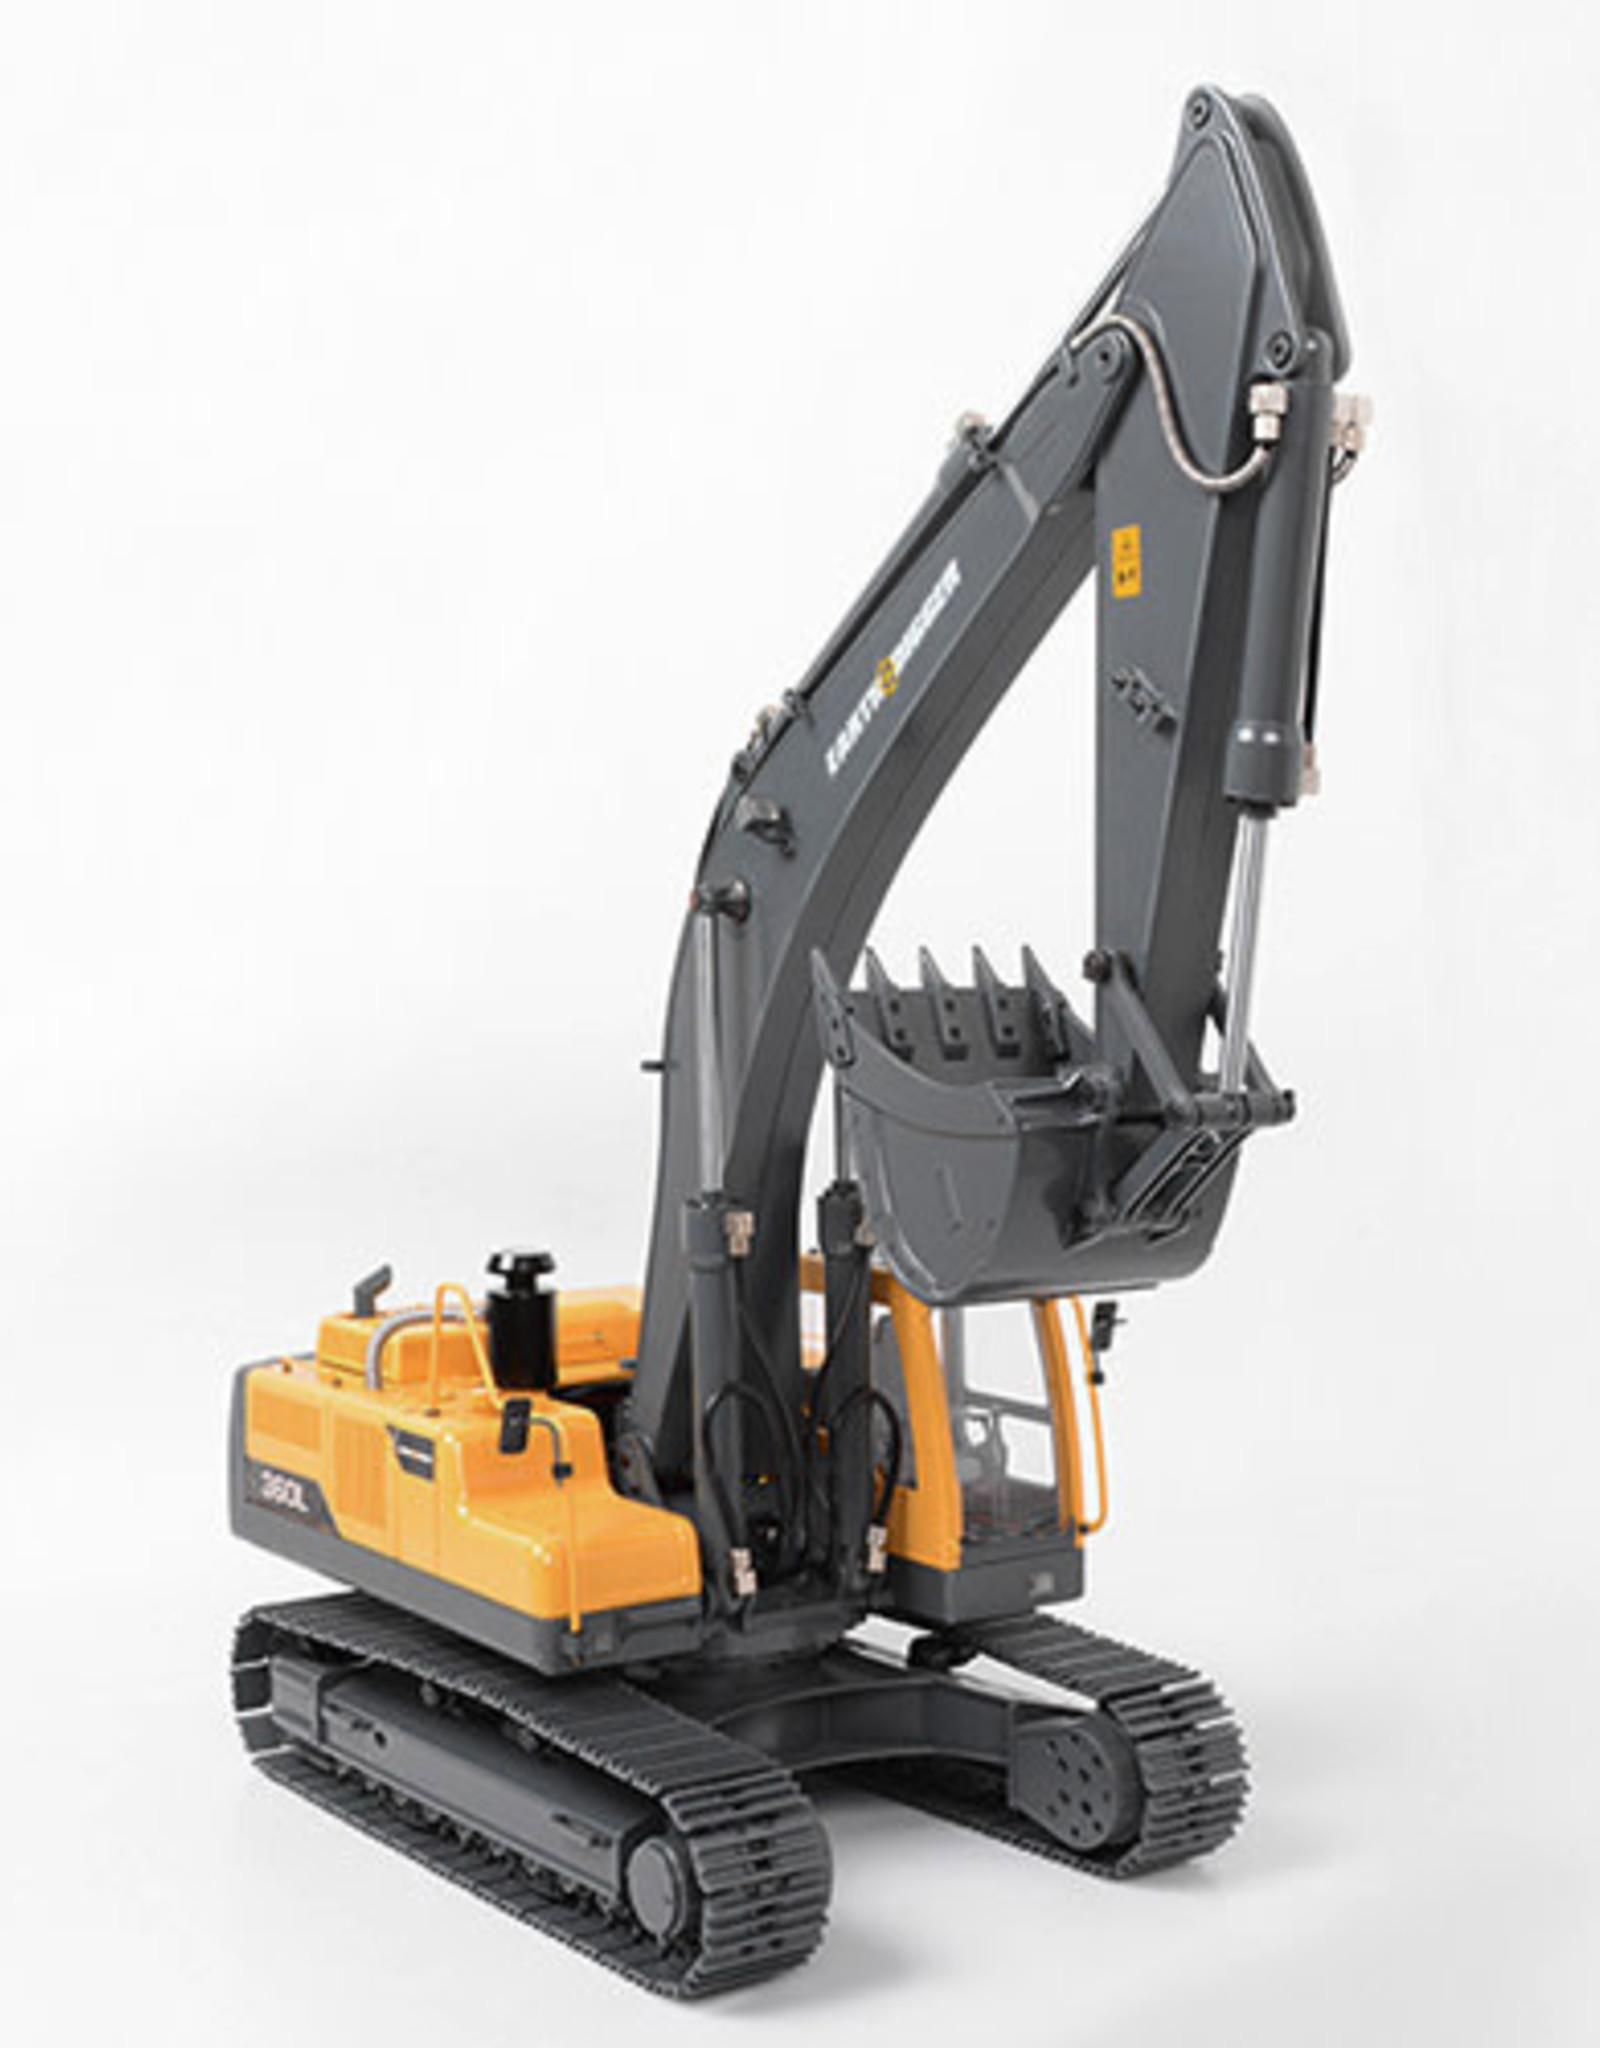 RC4WD RC4WD-VV-JD00016 1/14 Scale RTR Earth Digger 360L Hydraulic Excavator (Yellow)